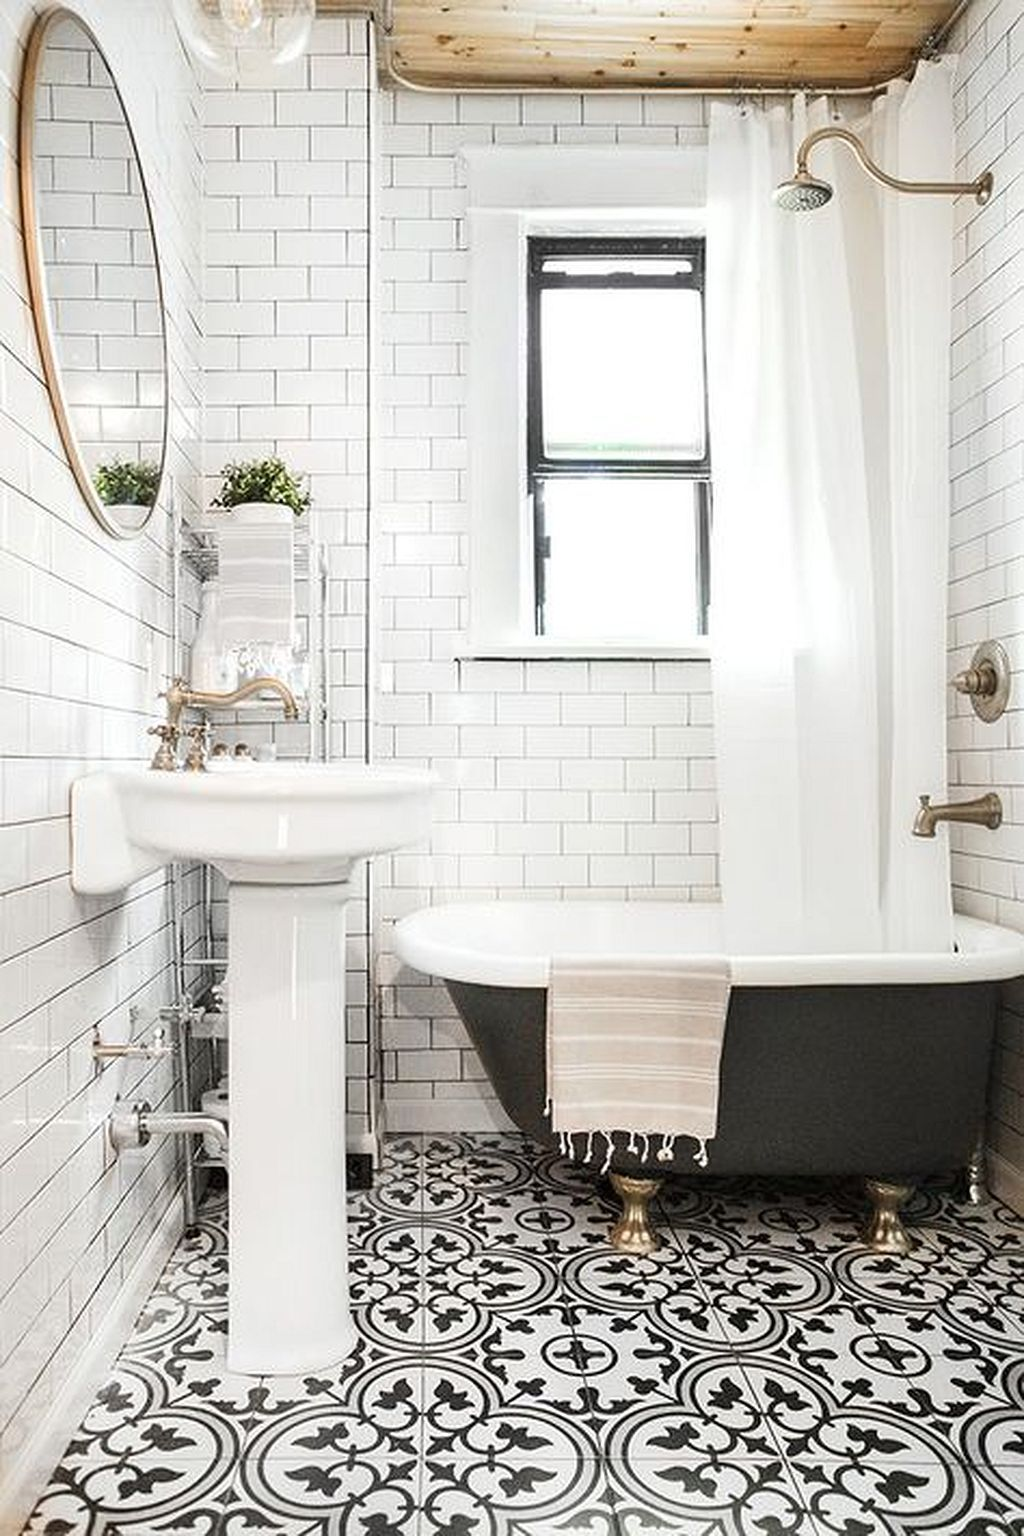 Top Stylesffrom Design Sponge Ideas 59 Gorgeous Bathroom Black White Bathrooms Bathroom Makeover